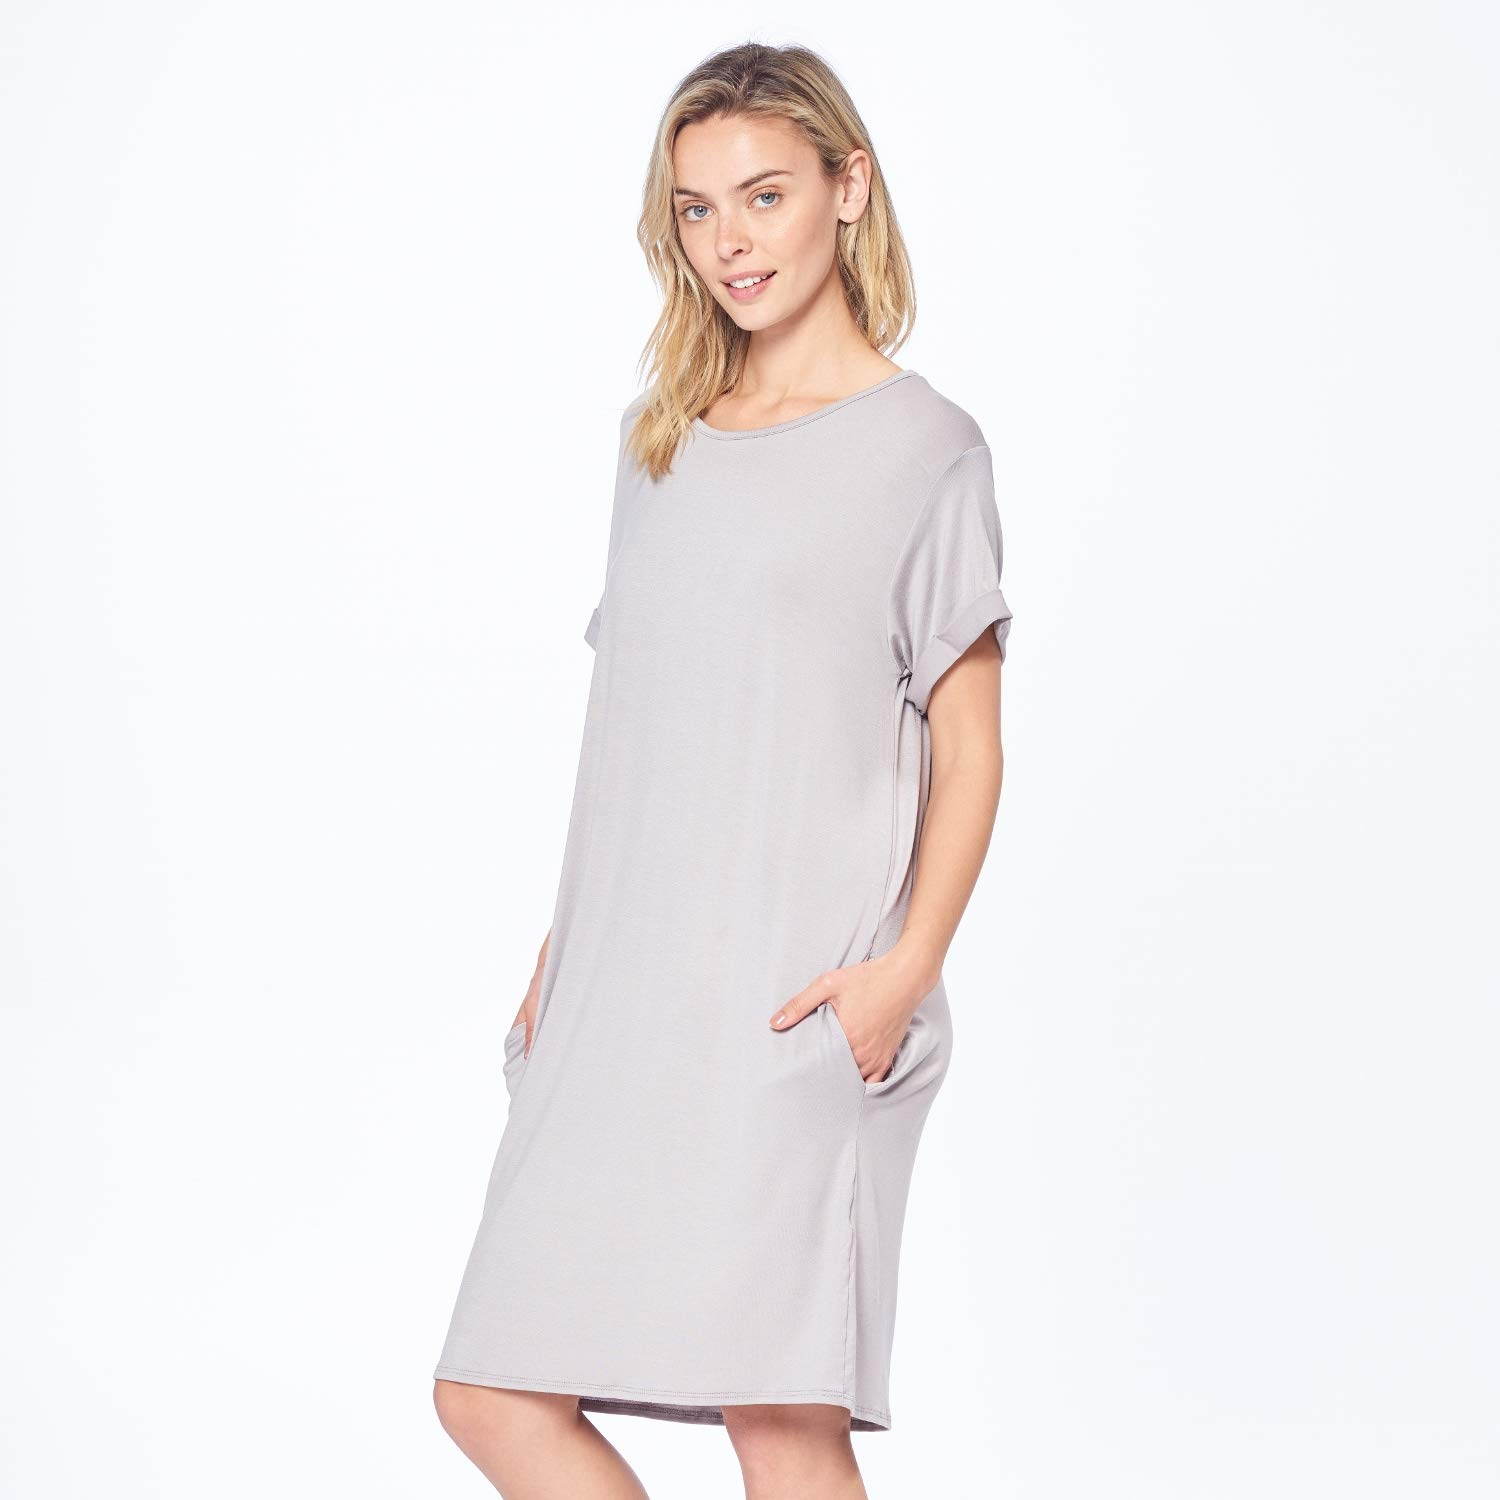 5553669c864 Isaac Liev Women's Cuffed Sleeve Tunic Dress at Amazon Women's Clothing  store: